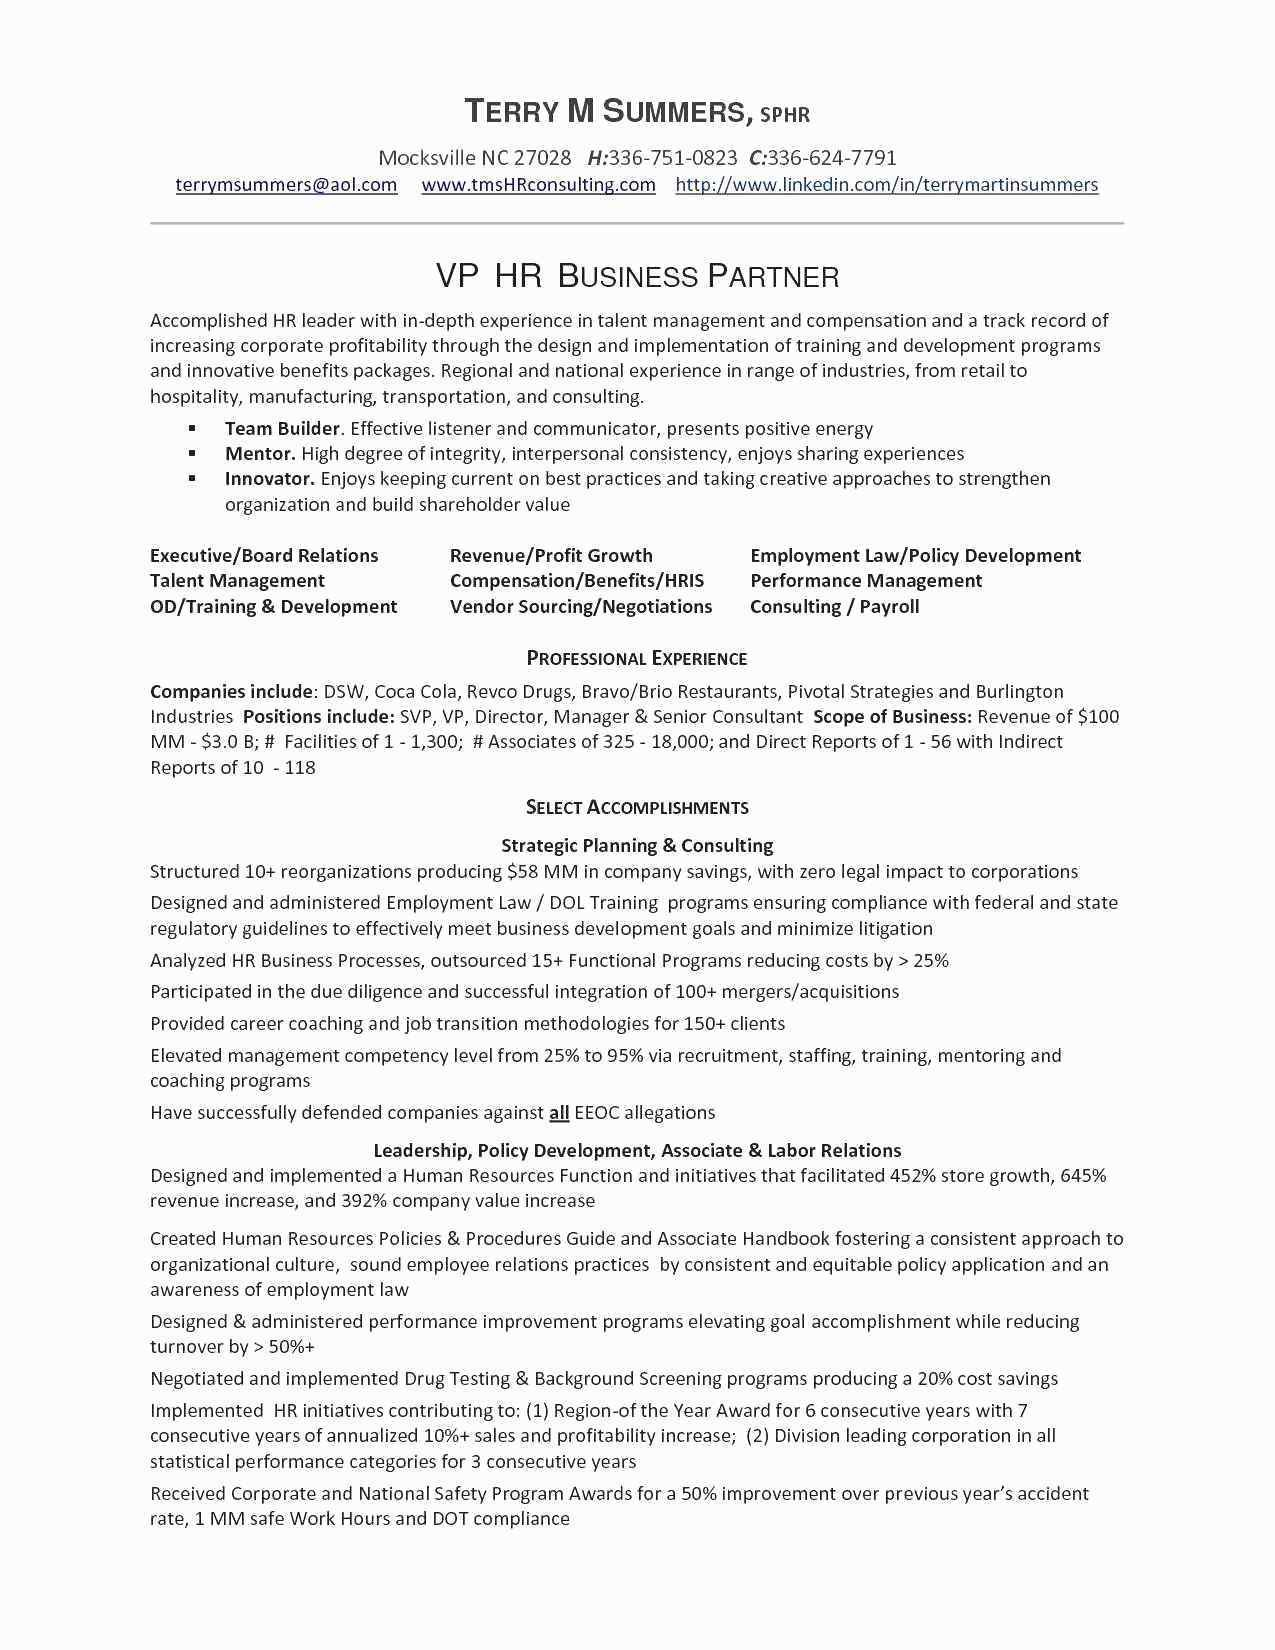 mergers and acquisitions resume template example-Mergers And Inquisitions Resume Template New 25 Unique Mergers And Inquisitions Resume Template Trendsozleri Fresh Mergers And Inquisitions Resume 2-l